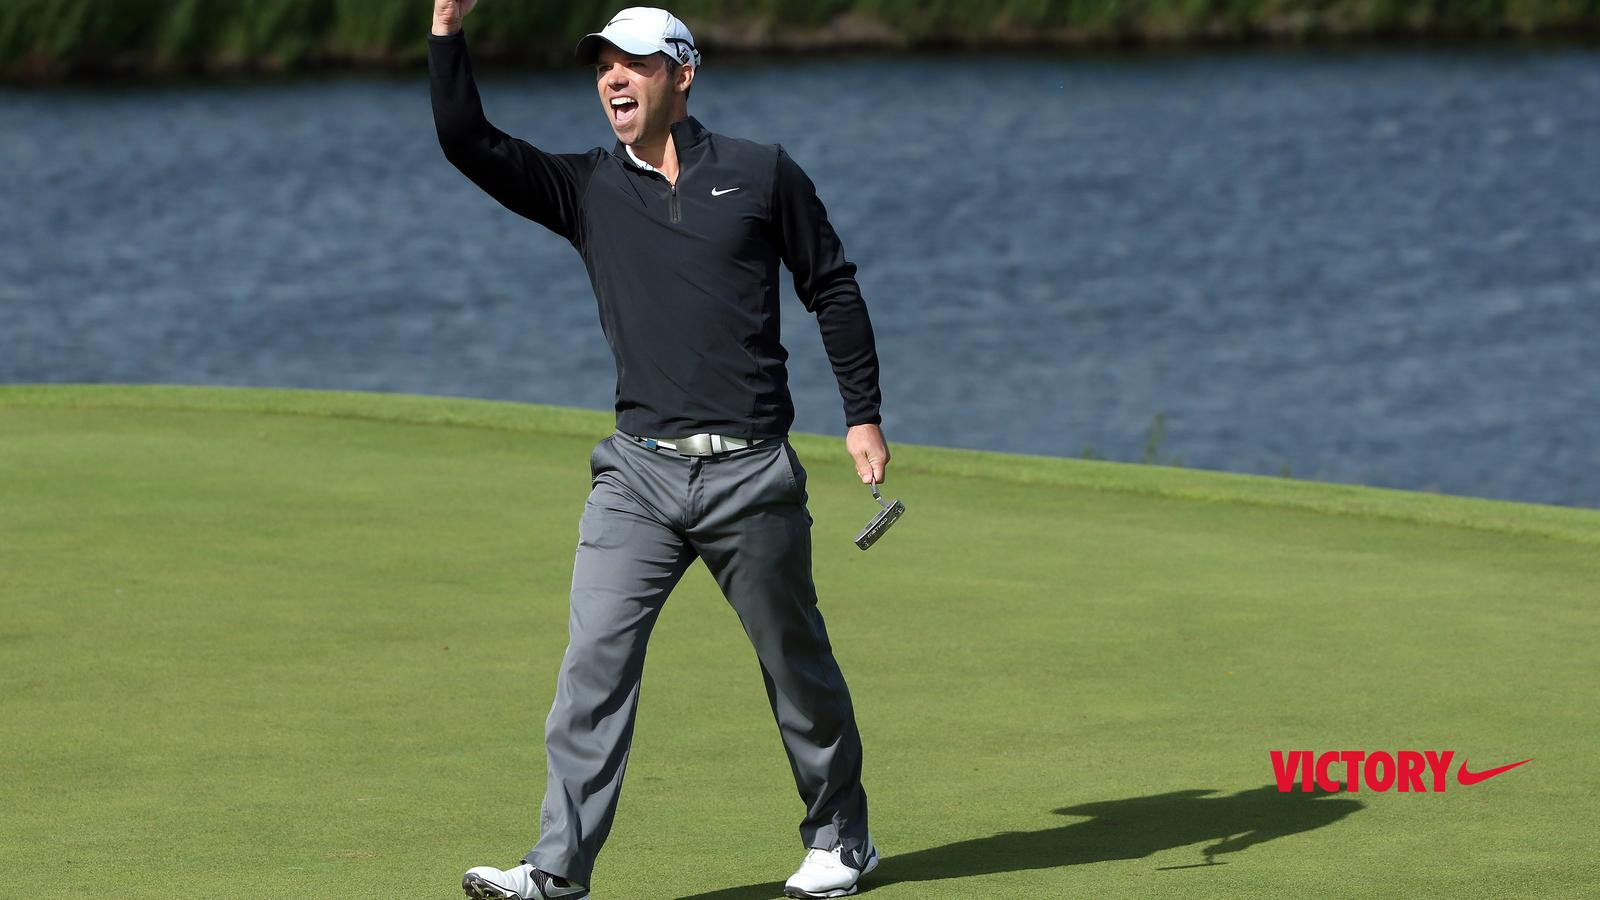 """755f8094c An """"Incredibly Sweet"""" Victory for Nike Athlete Paul Casey - Nike News"""